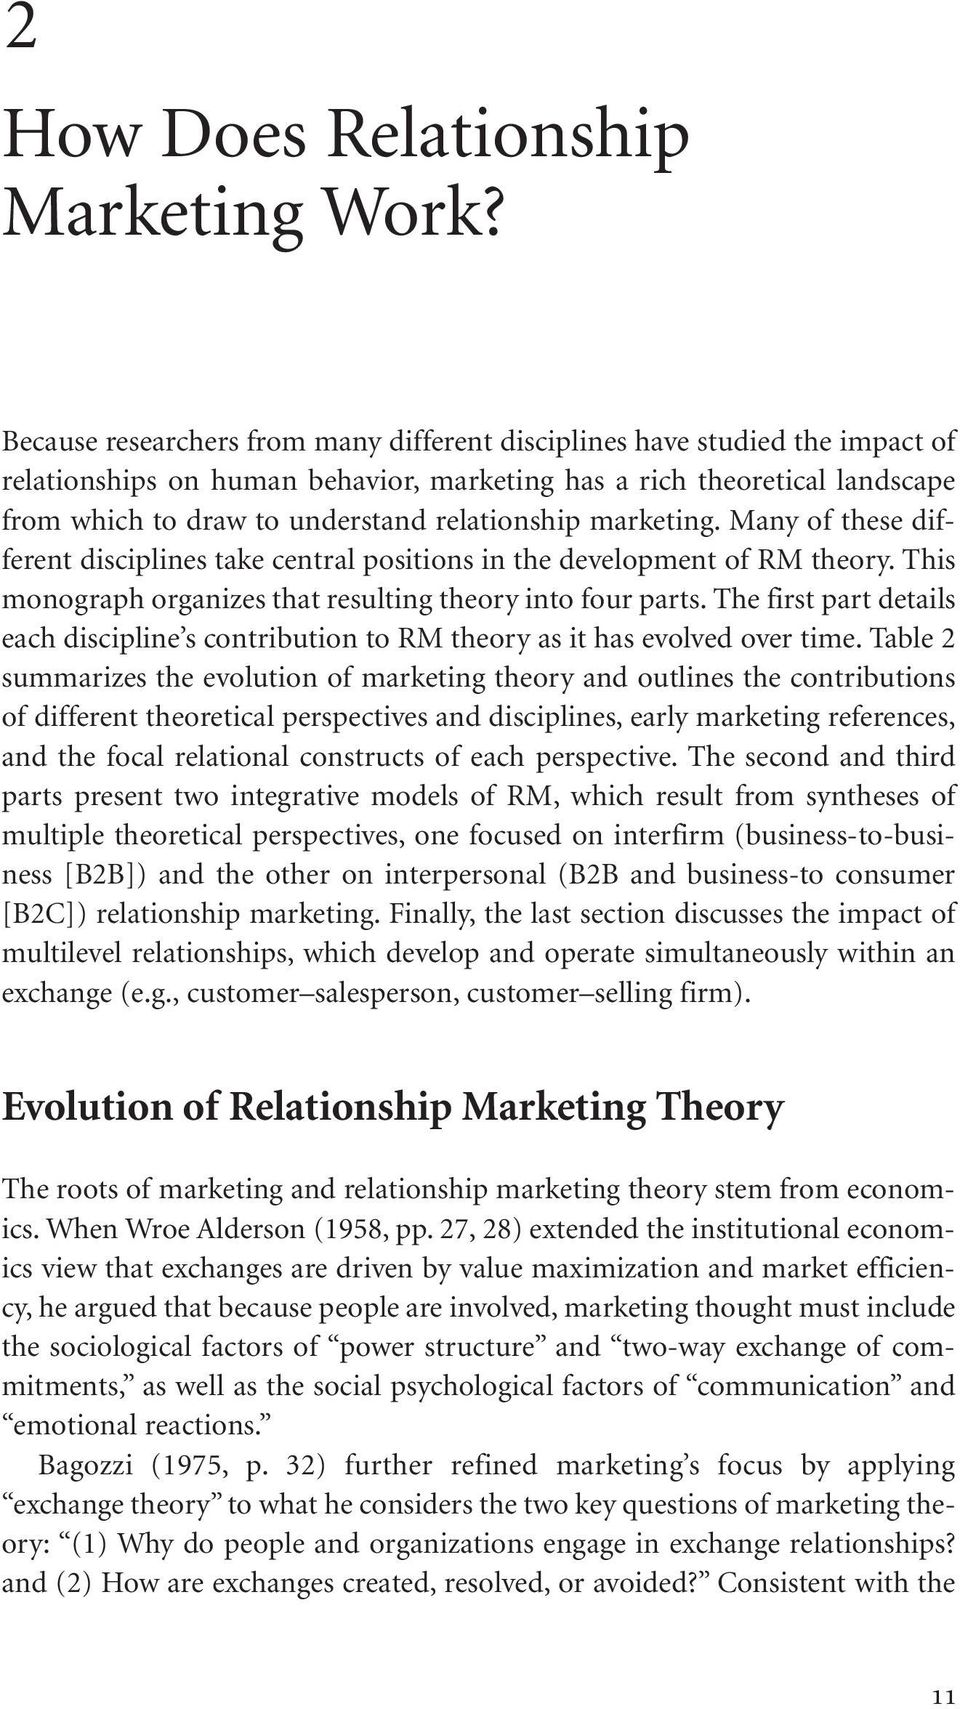 relationship marketing. Many of these different disciplines take central positions in the development of RM theory. This monograph organizes that resulting theory into four parts.